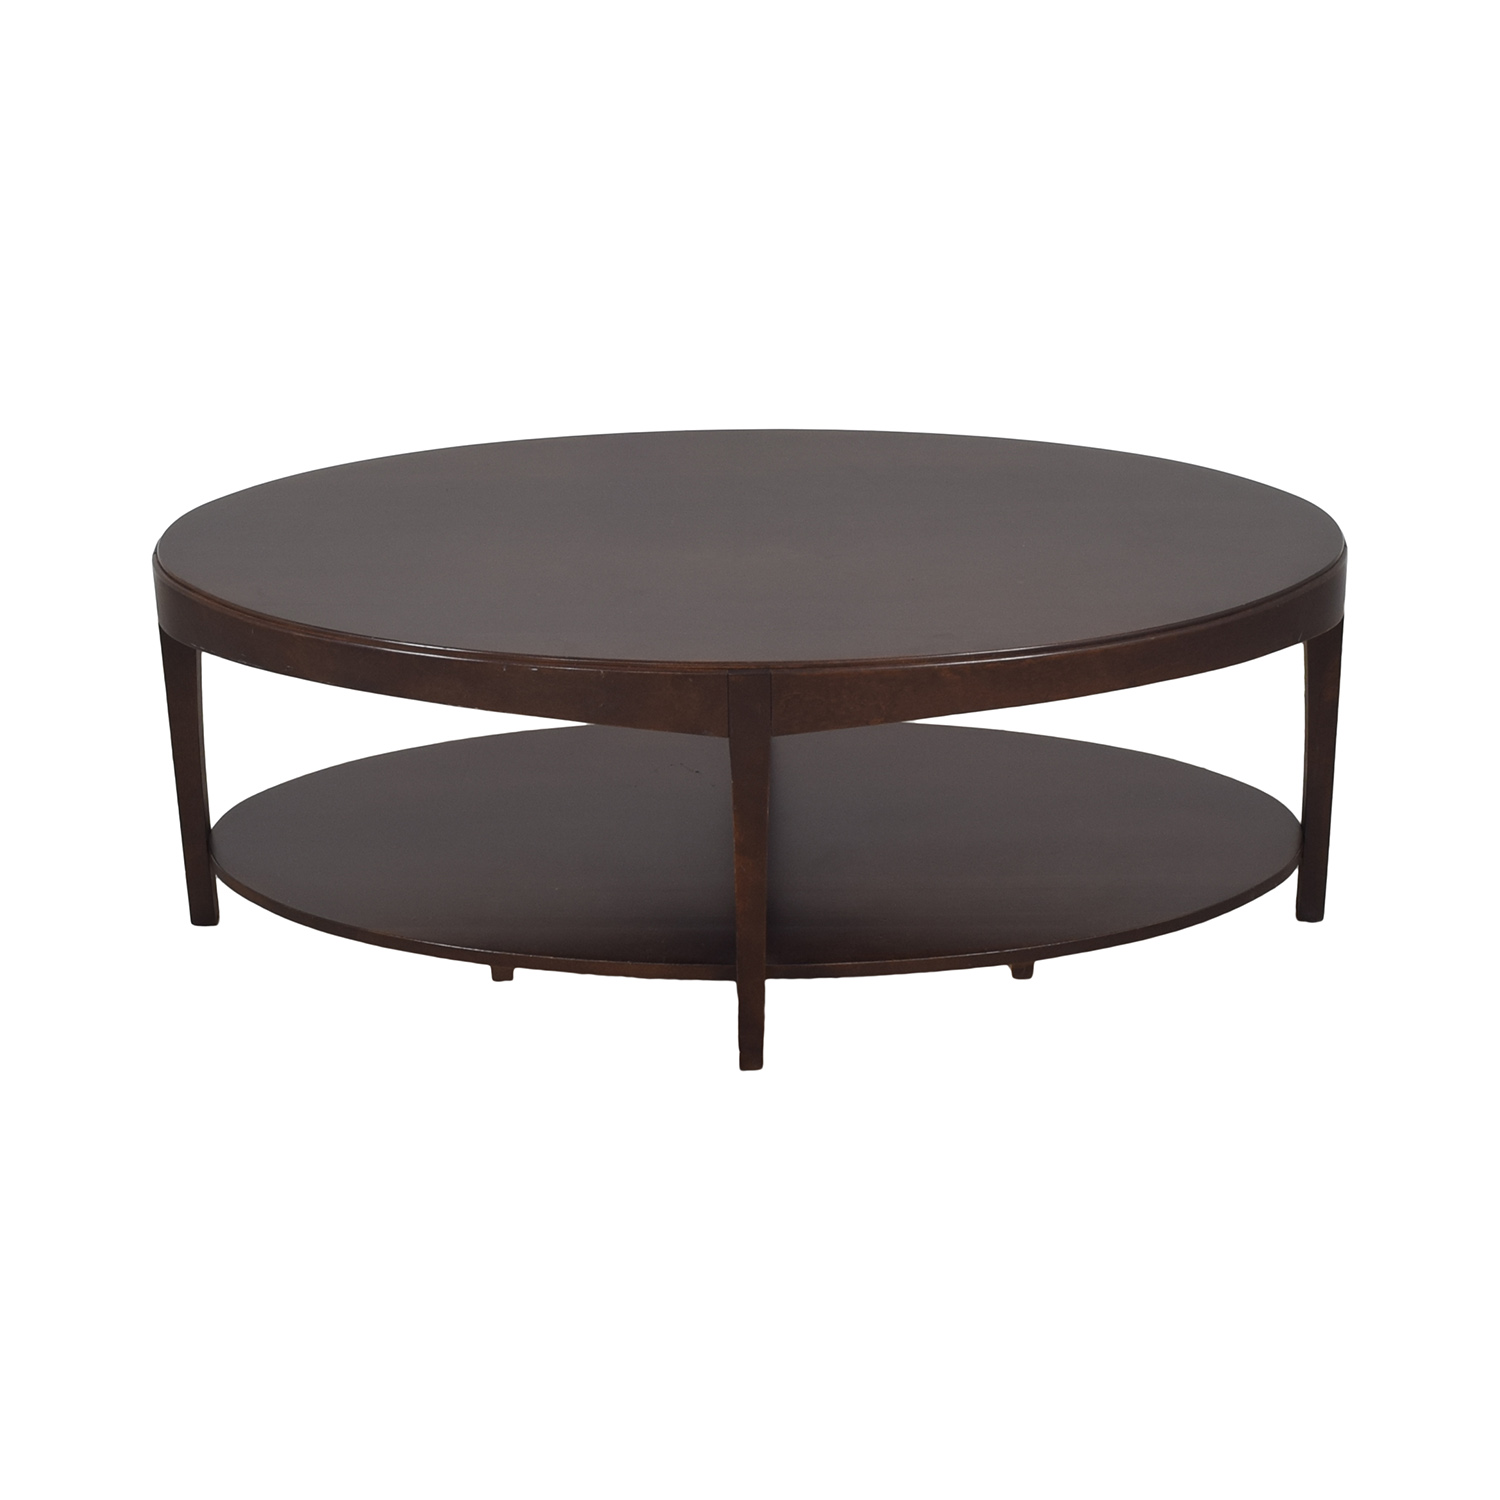 Shermag Shermag Oval Coffee Table on sale